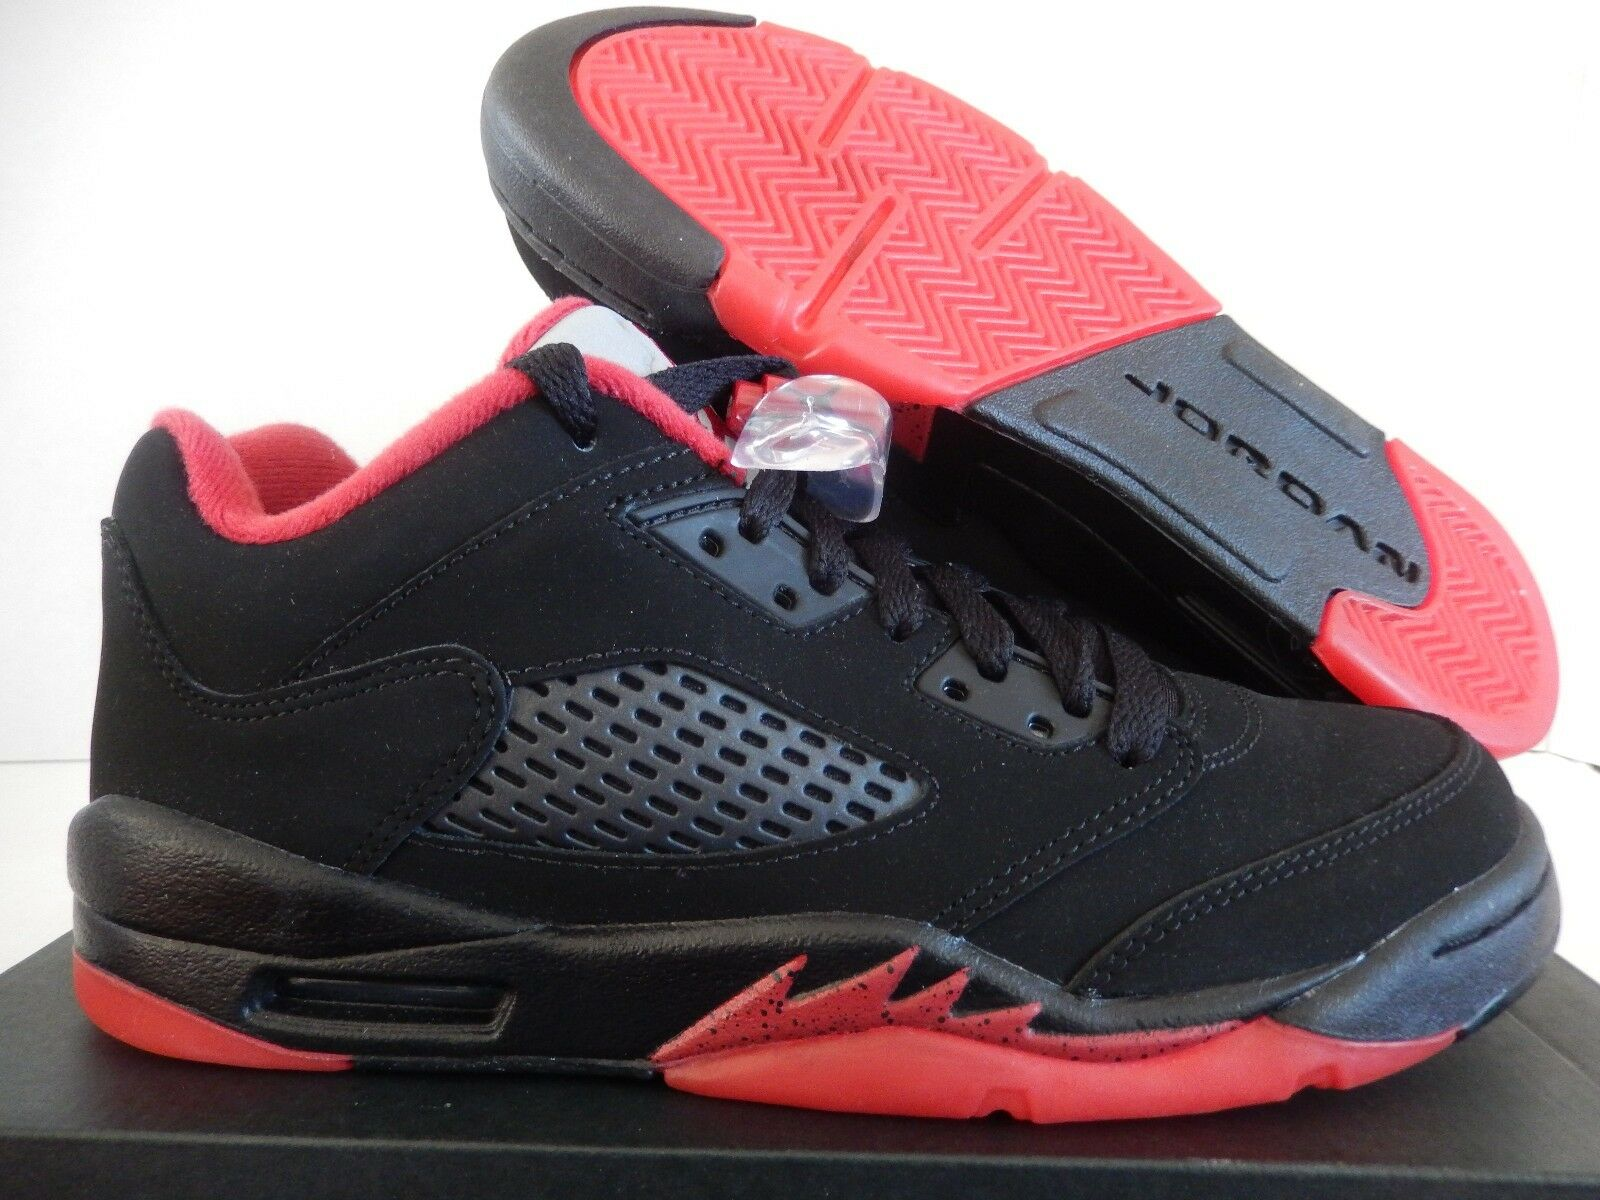 NIKE AIR JORDAN 5 RETRO LOW (GS) BLACK-GYM RED SZ 6.5Y-WMNS SZ 8 [314338-001]